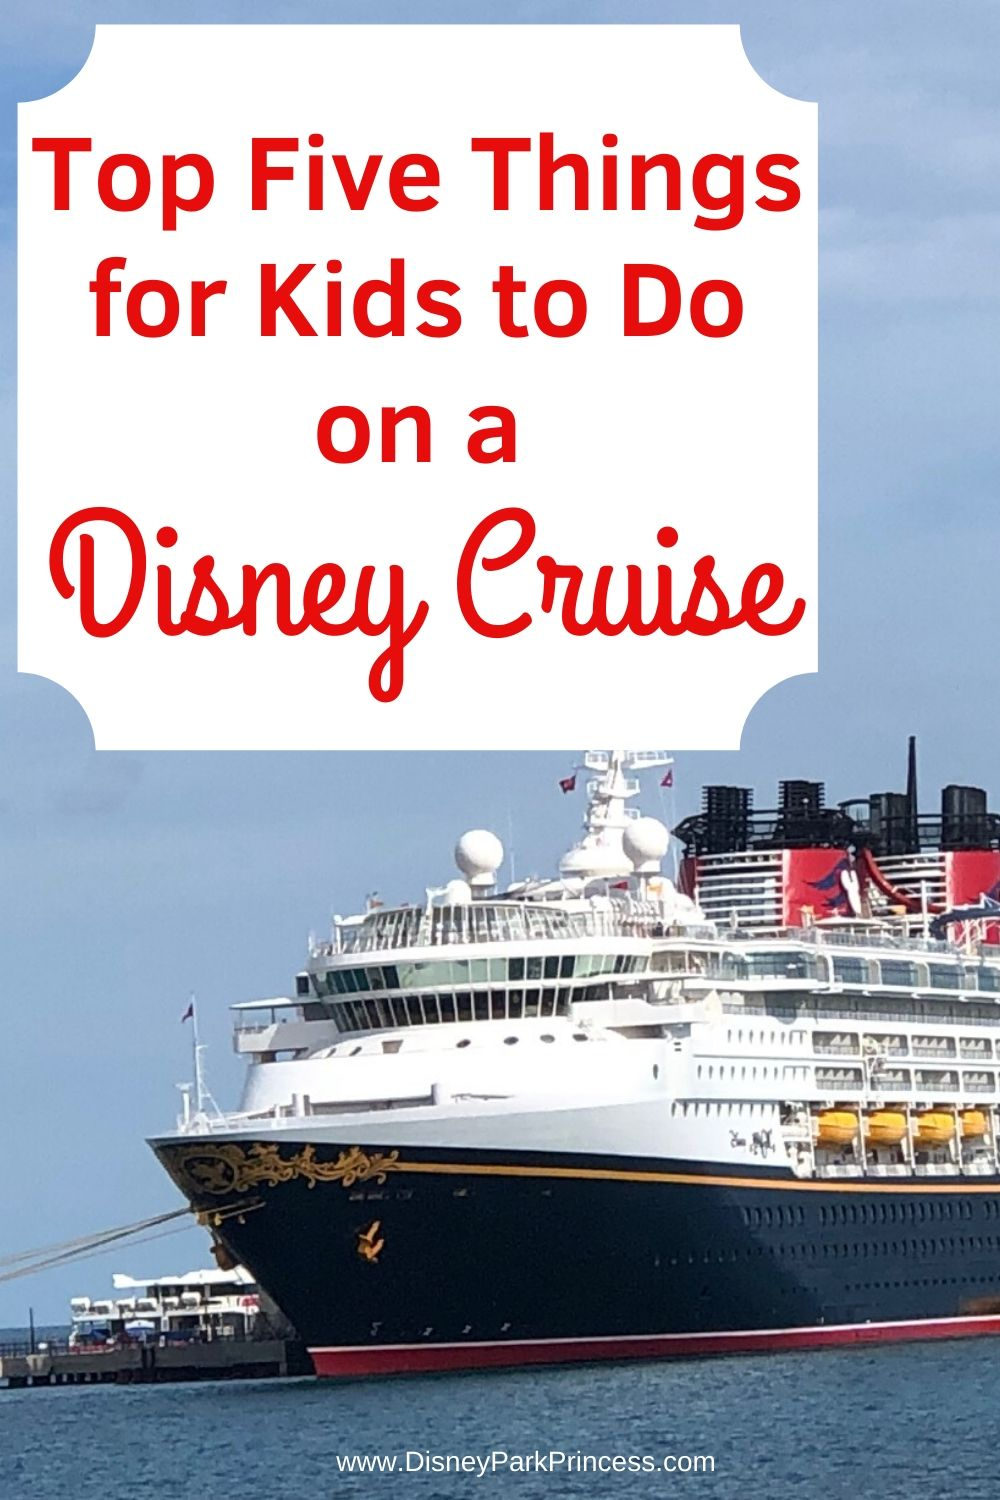 Kids can really let loose and be themselves onboard a Disney Cruise. Here are just a few fun things that kids can do on Disney Cruise Line.